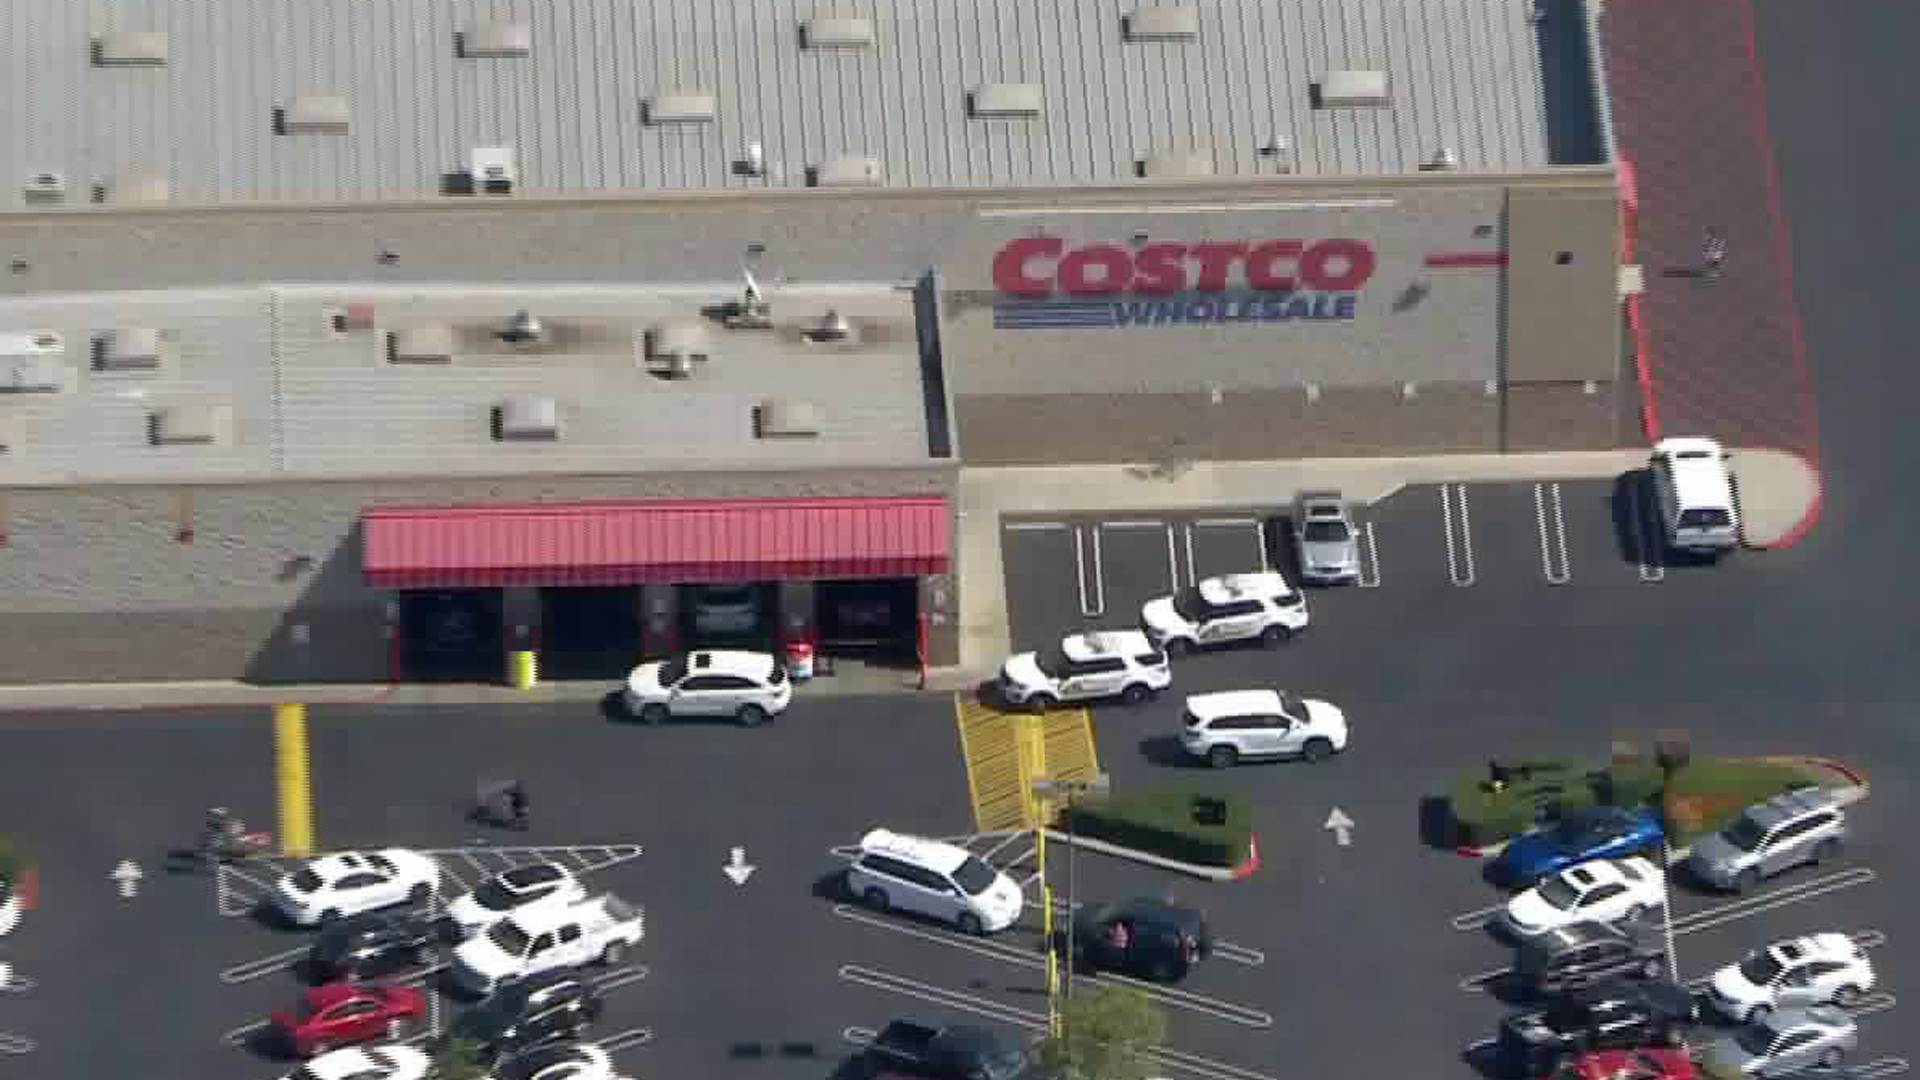 At least two law enforcement vehicles could be seen parked outside the Costco in Chino Hills on March 5, 2020. (KTLA)